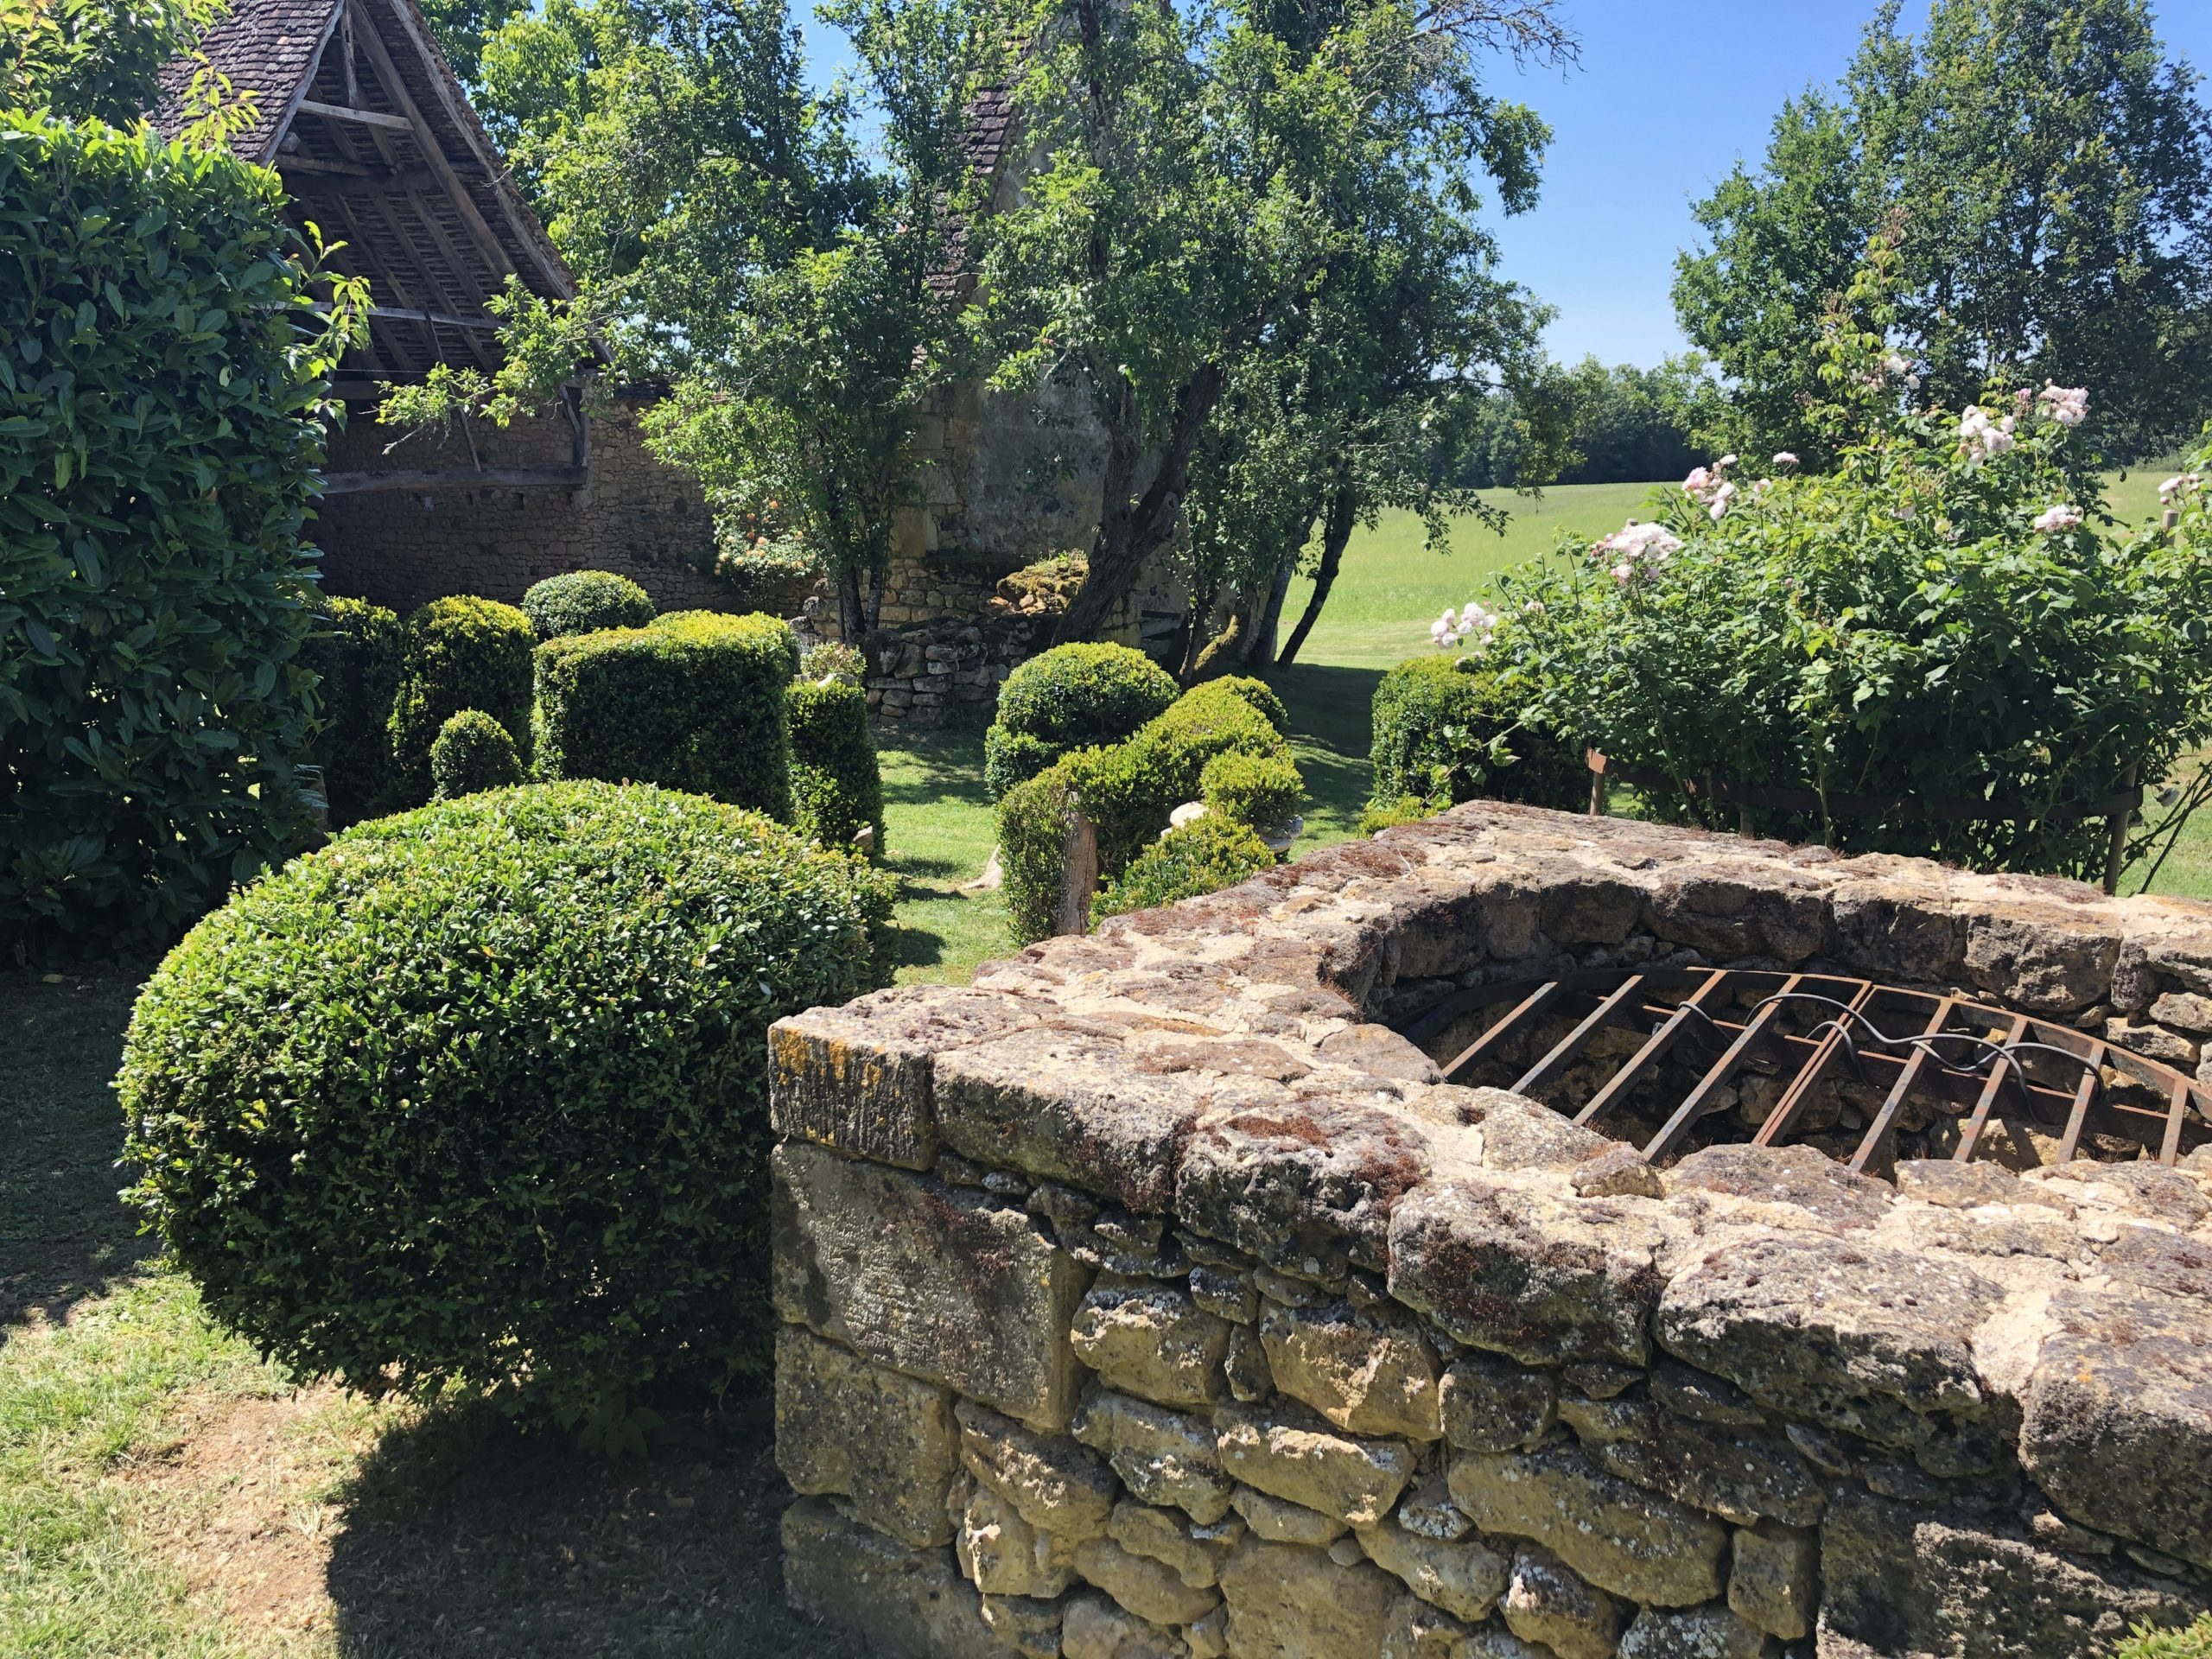 Luxury holiday accommodation in the Dordogne with an old stone well and topiary bushes in a beautiful garden